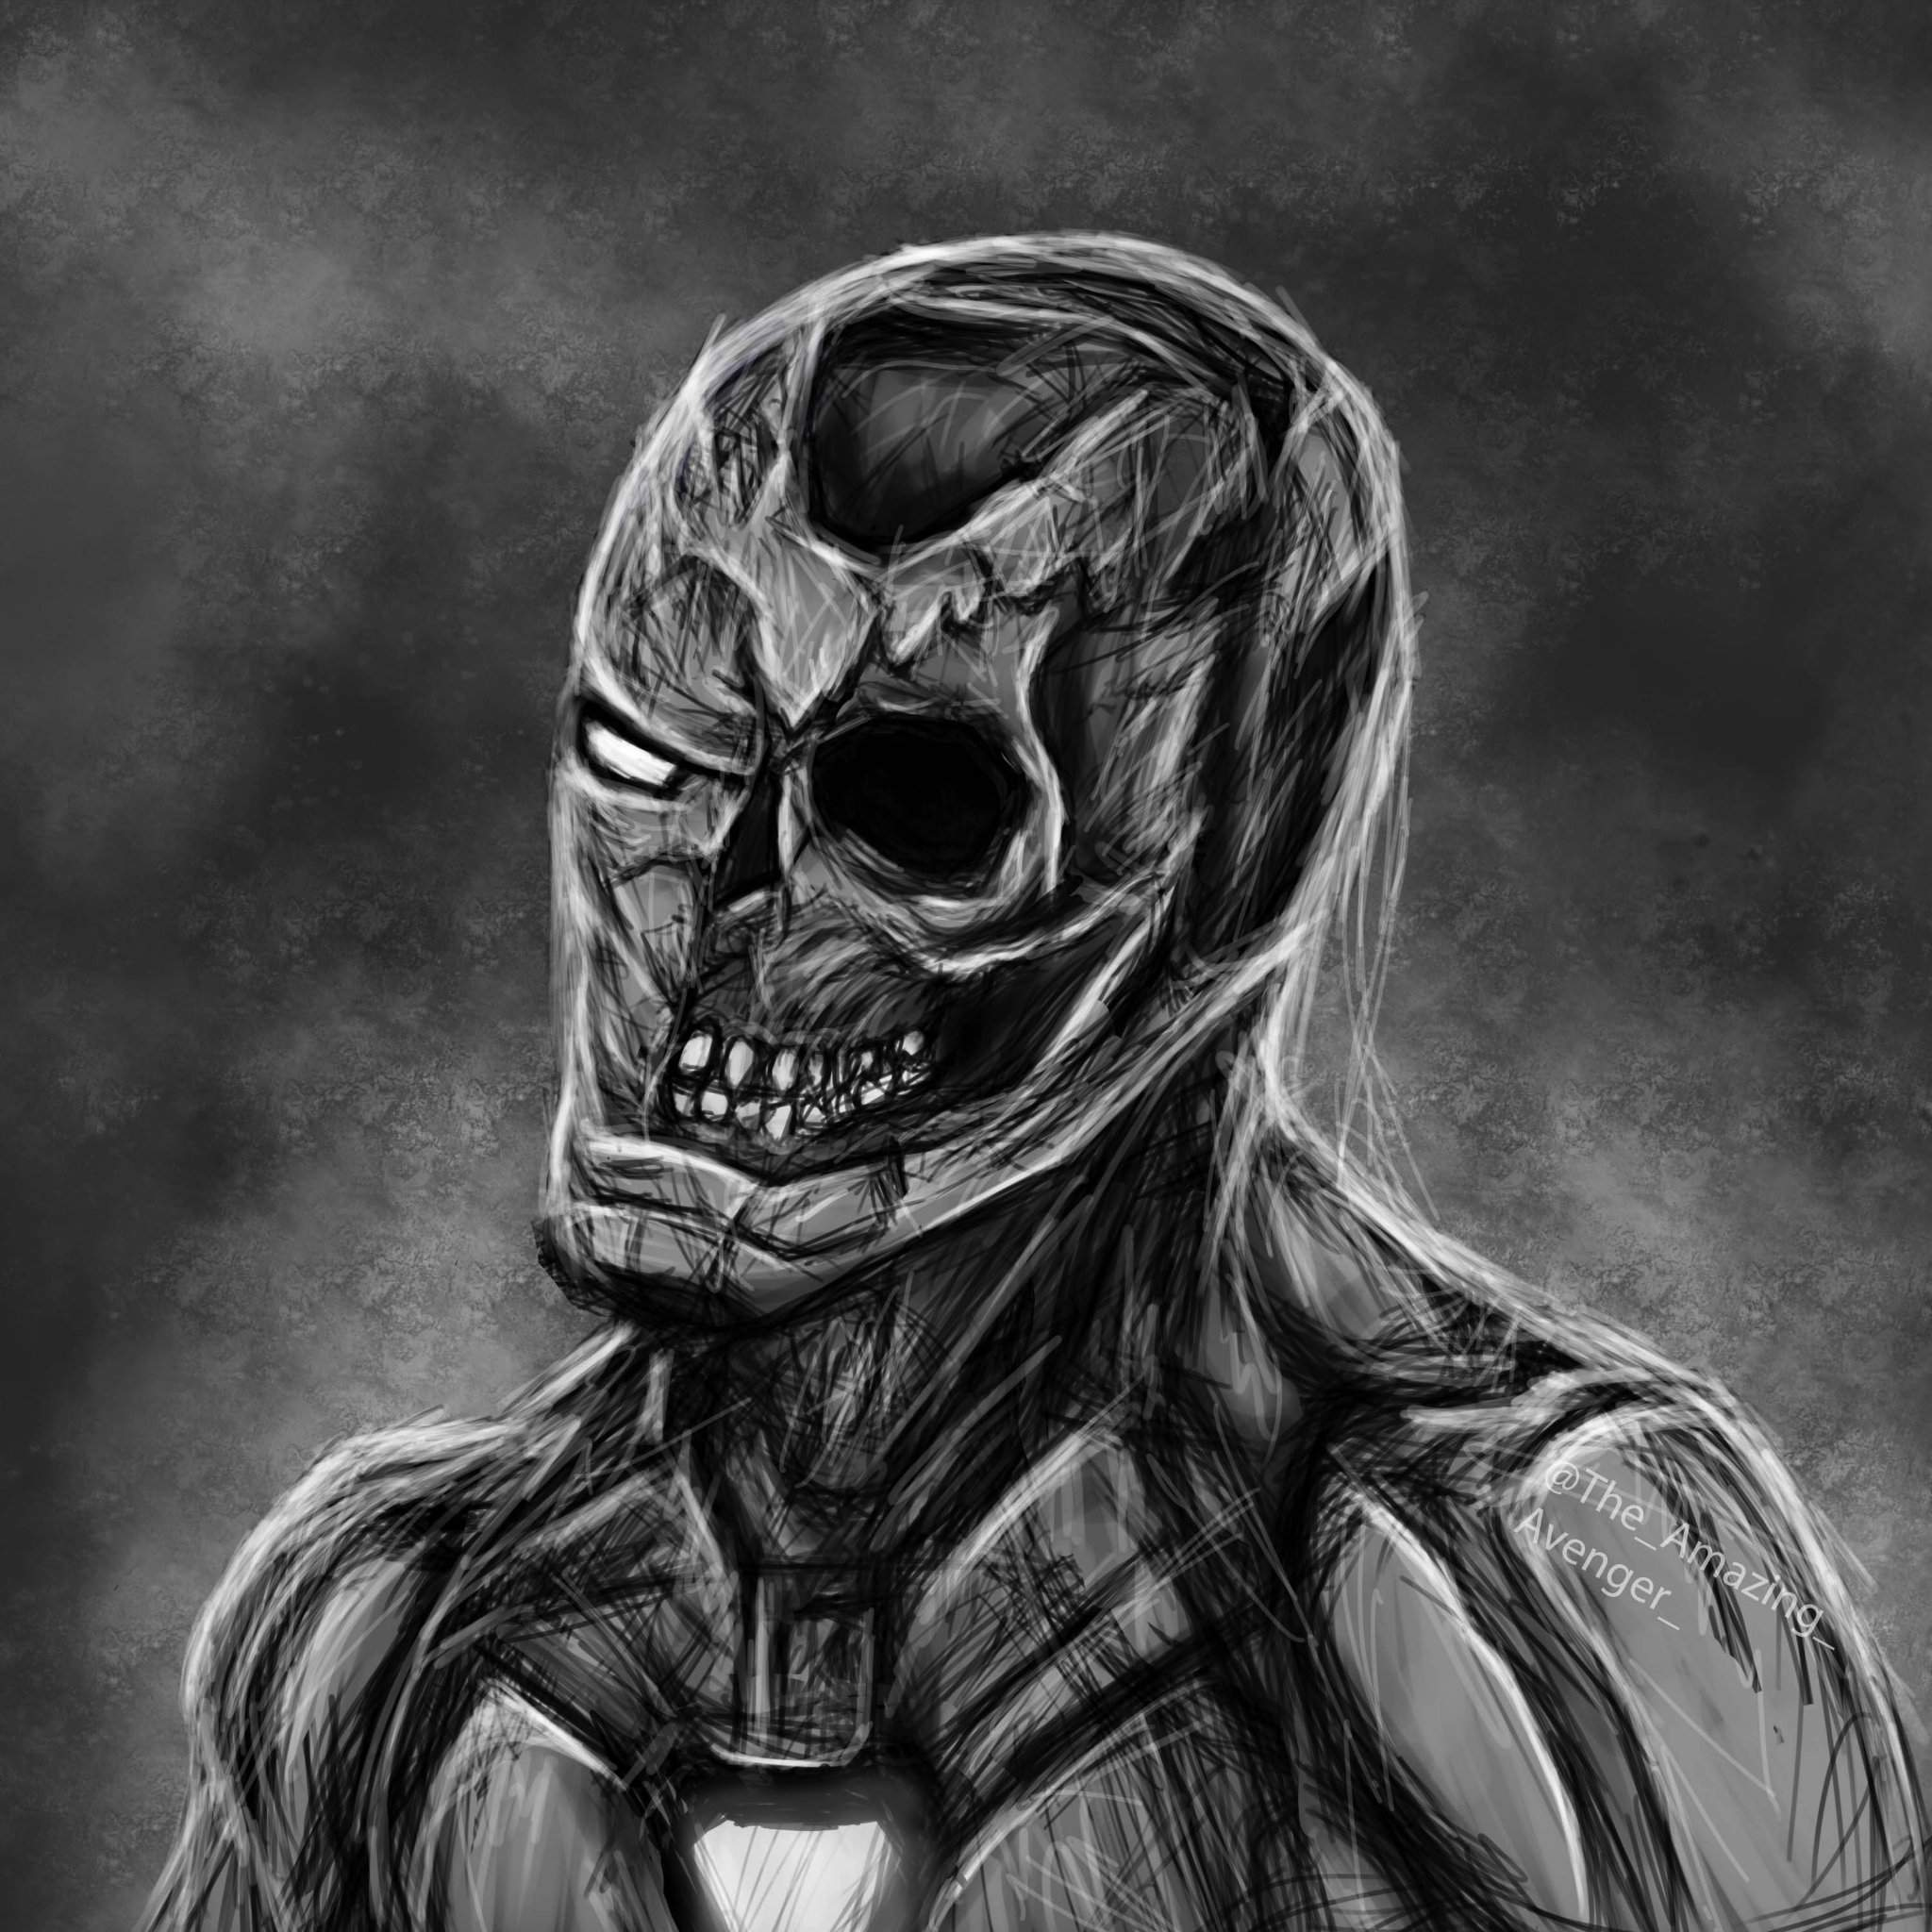 pictures of iron man zombie iron man art comics amino pictures man of iron